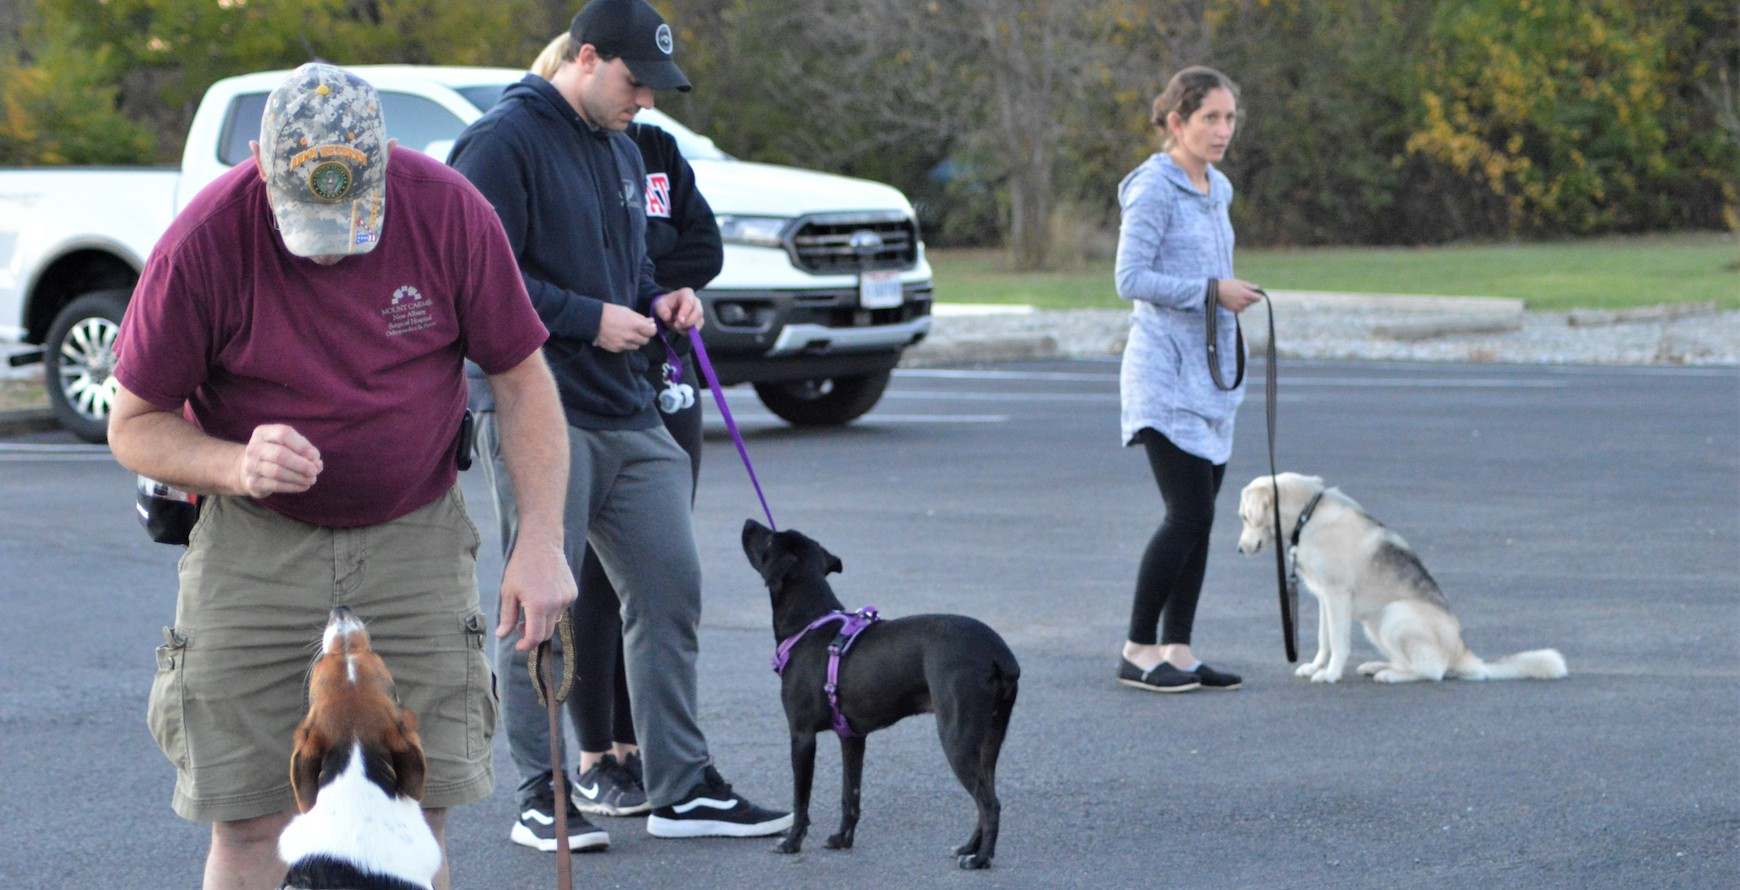 Interested in attending our free dog training classes?